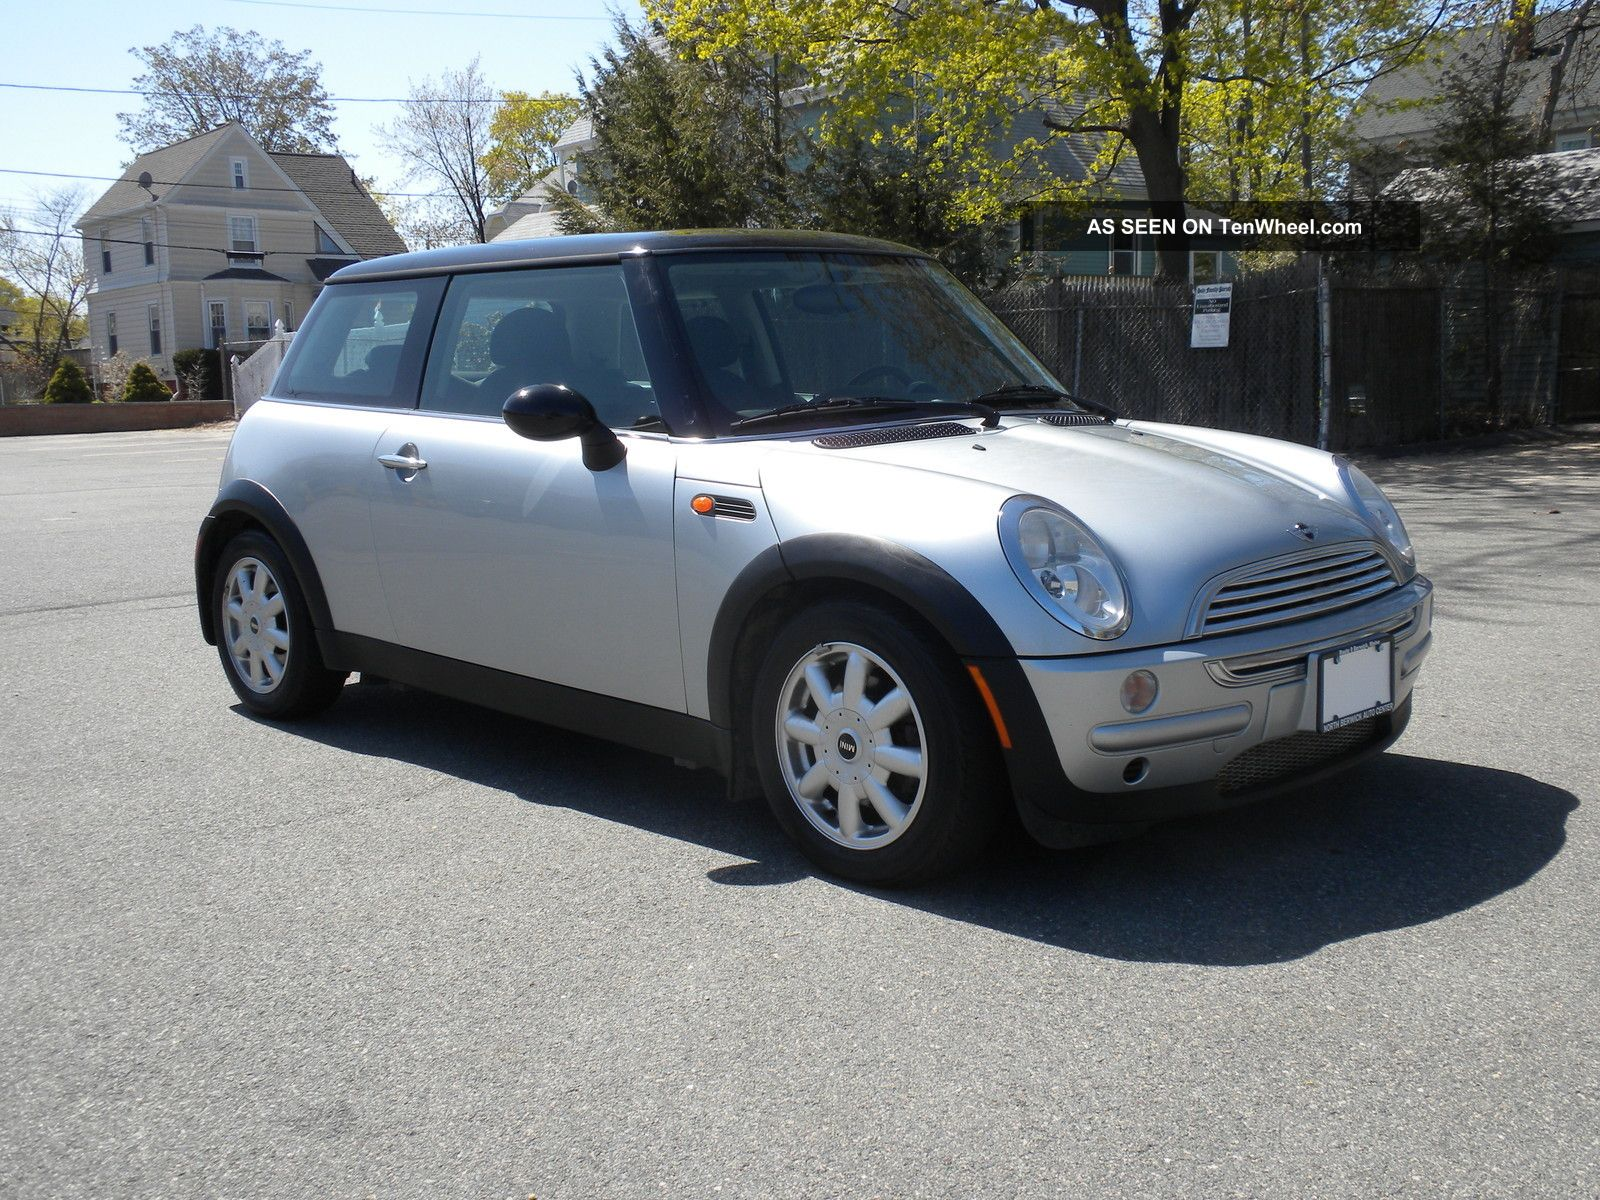 2004 mini cooper automatic ac 35 mpg financing available rh tenwheel com 2004 Mini Cooper Radio Manual Blue 2004 Mini Cooper S Manual